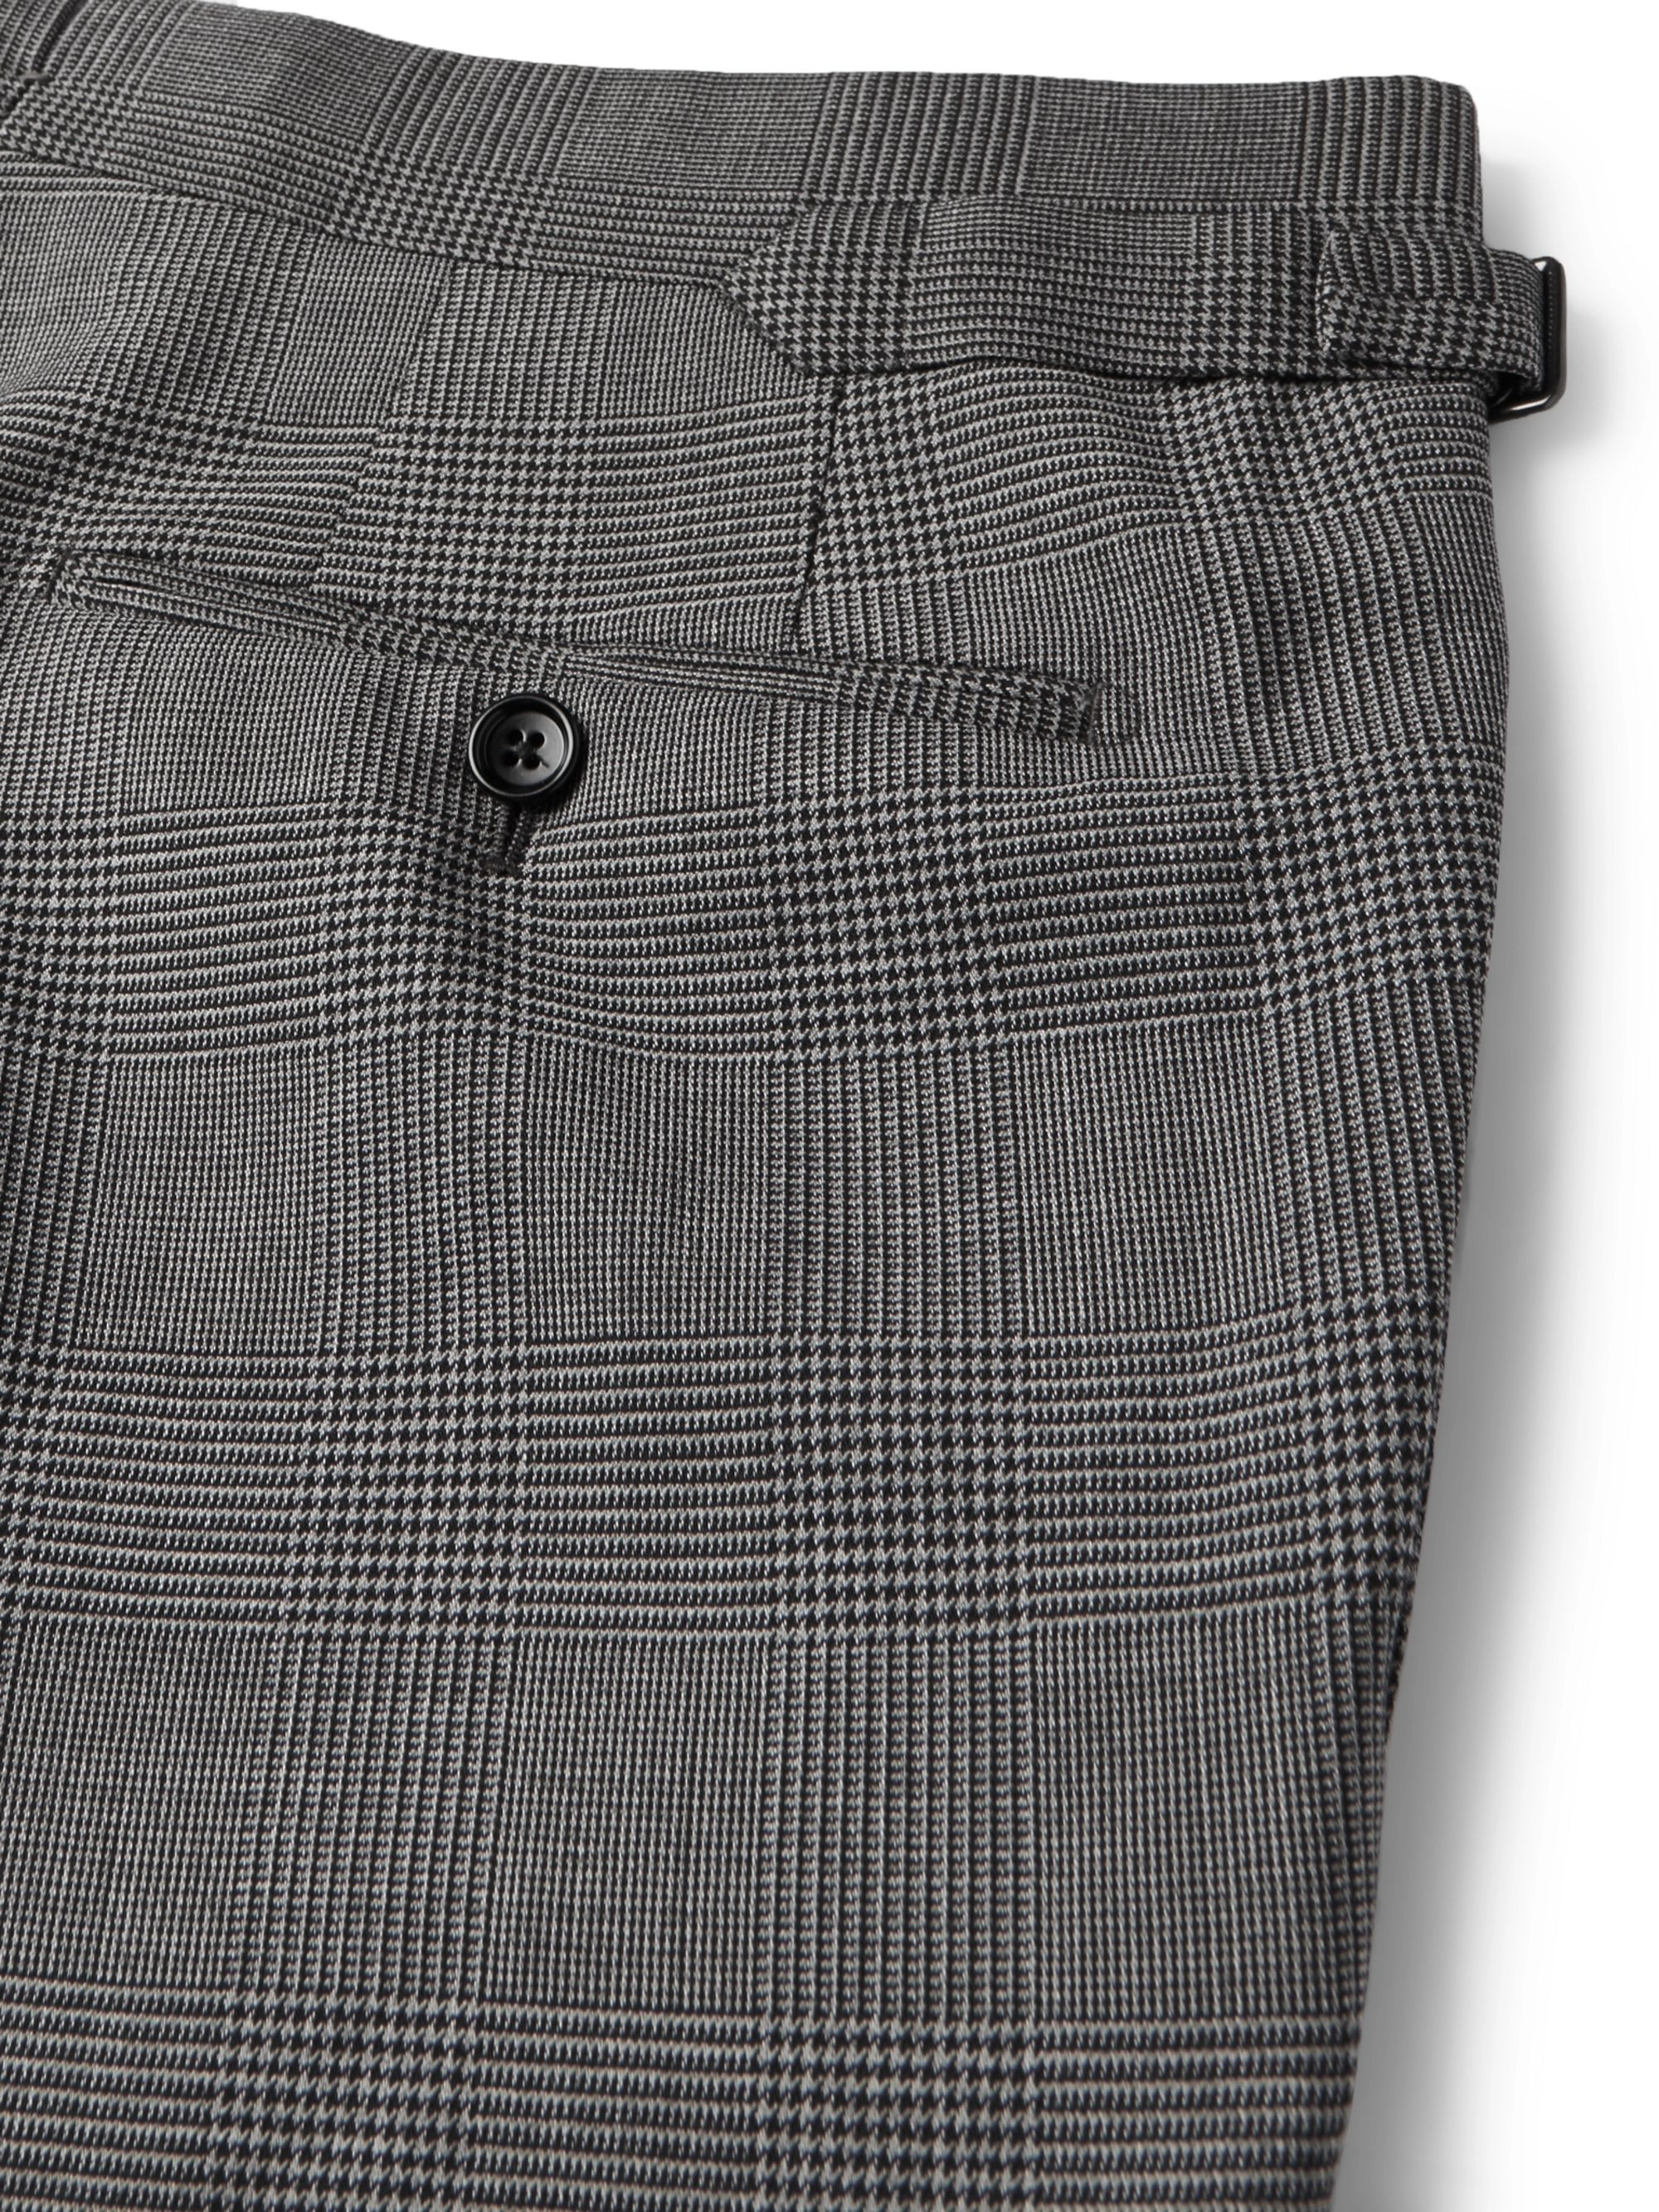 TOM FORD Grey Slim-Fit Prince of Wales Checked Stretch-Wool Suit Trousers